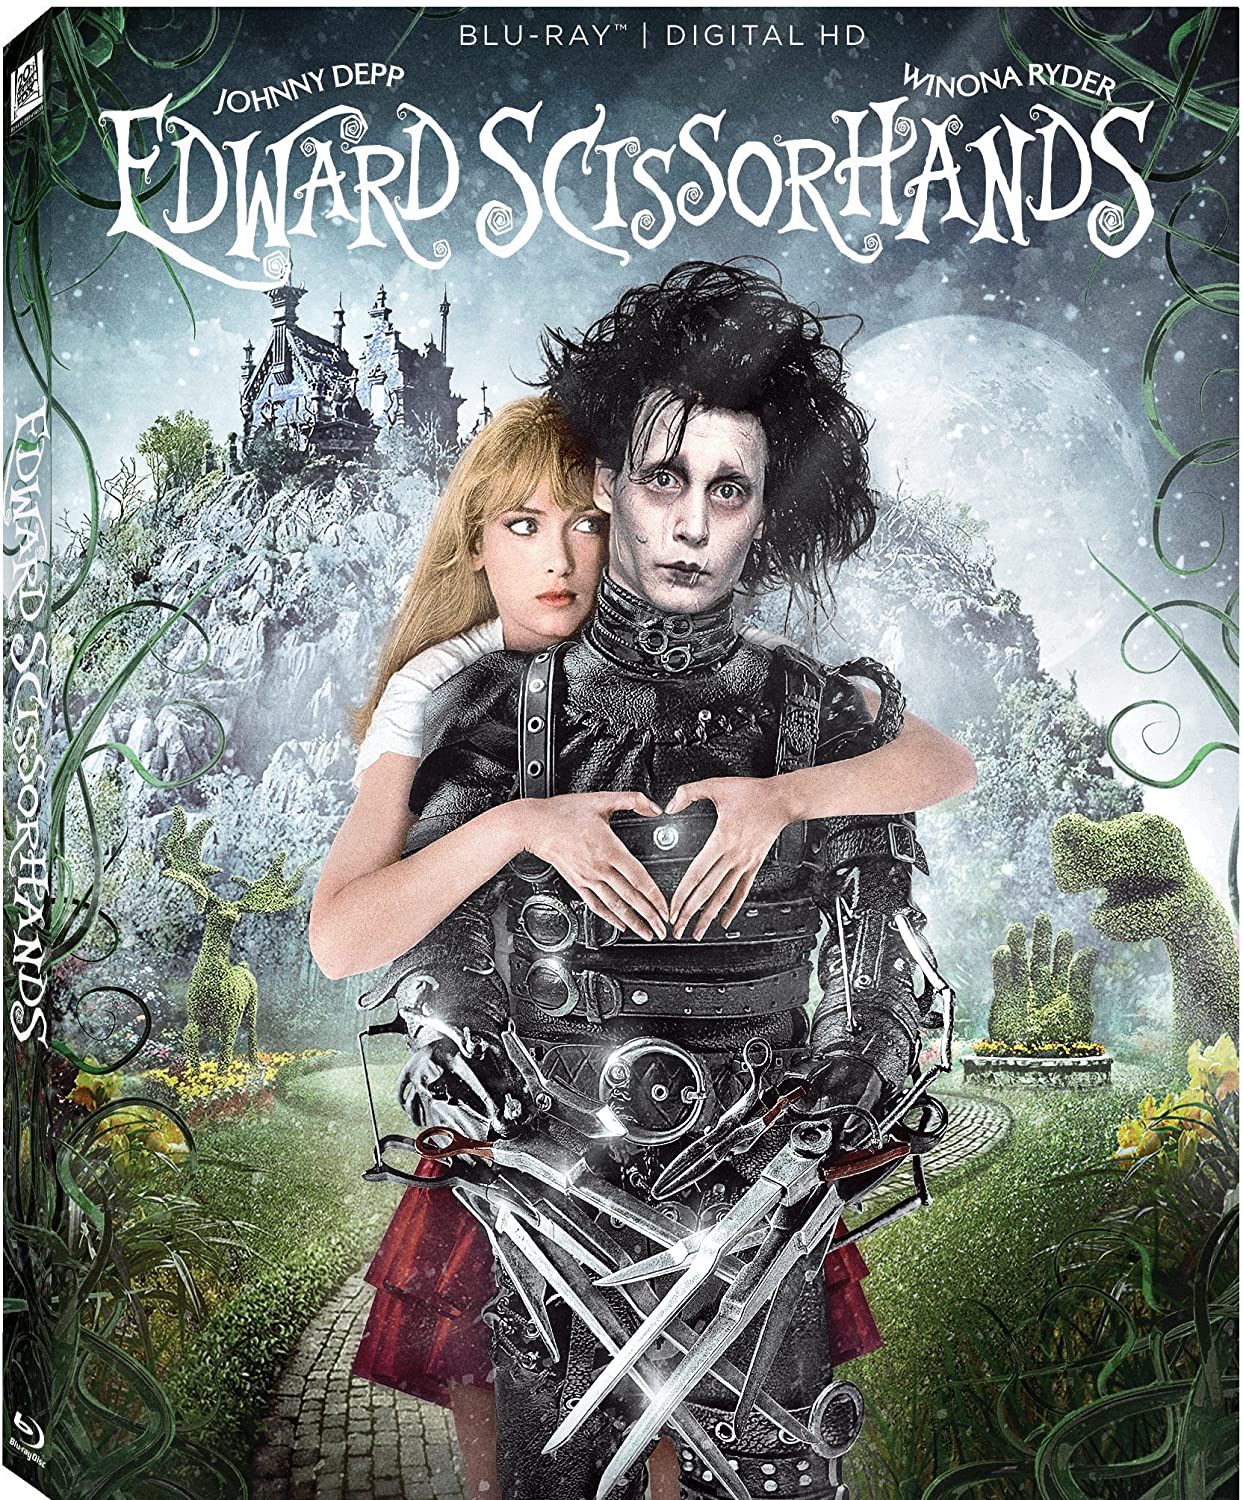 com edward scissorhands th anniversary blu ray anthony  com edward scissorhands 25th anniversary blu ray anthony michael hall johnny depp tim burton movies tv